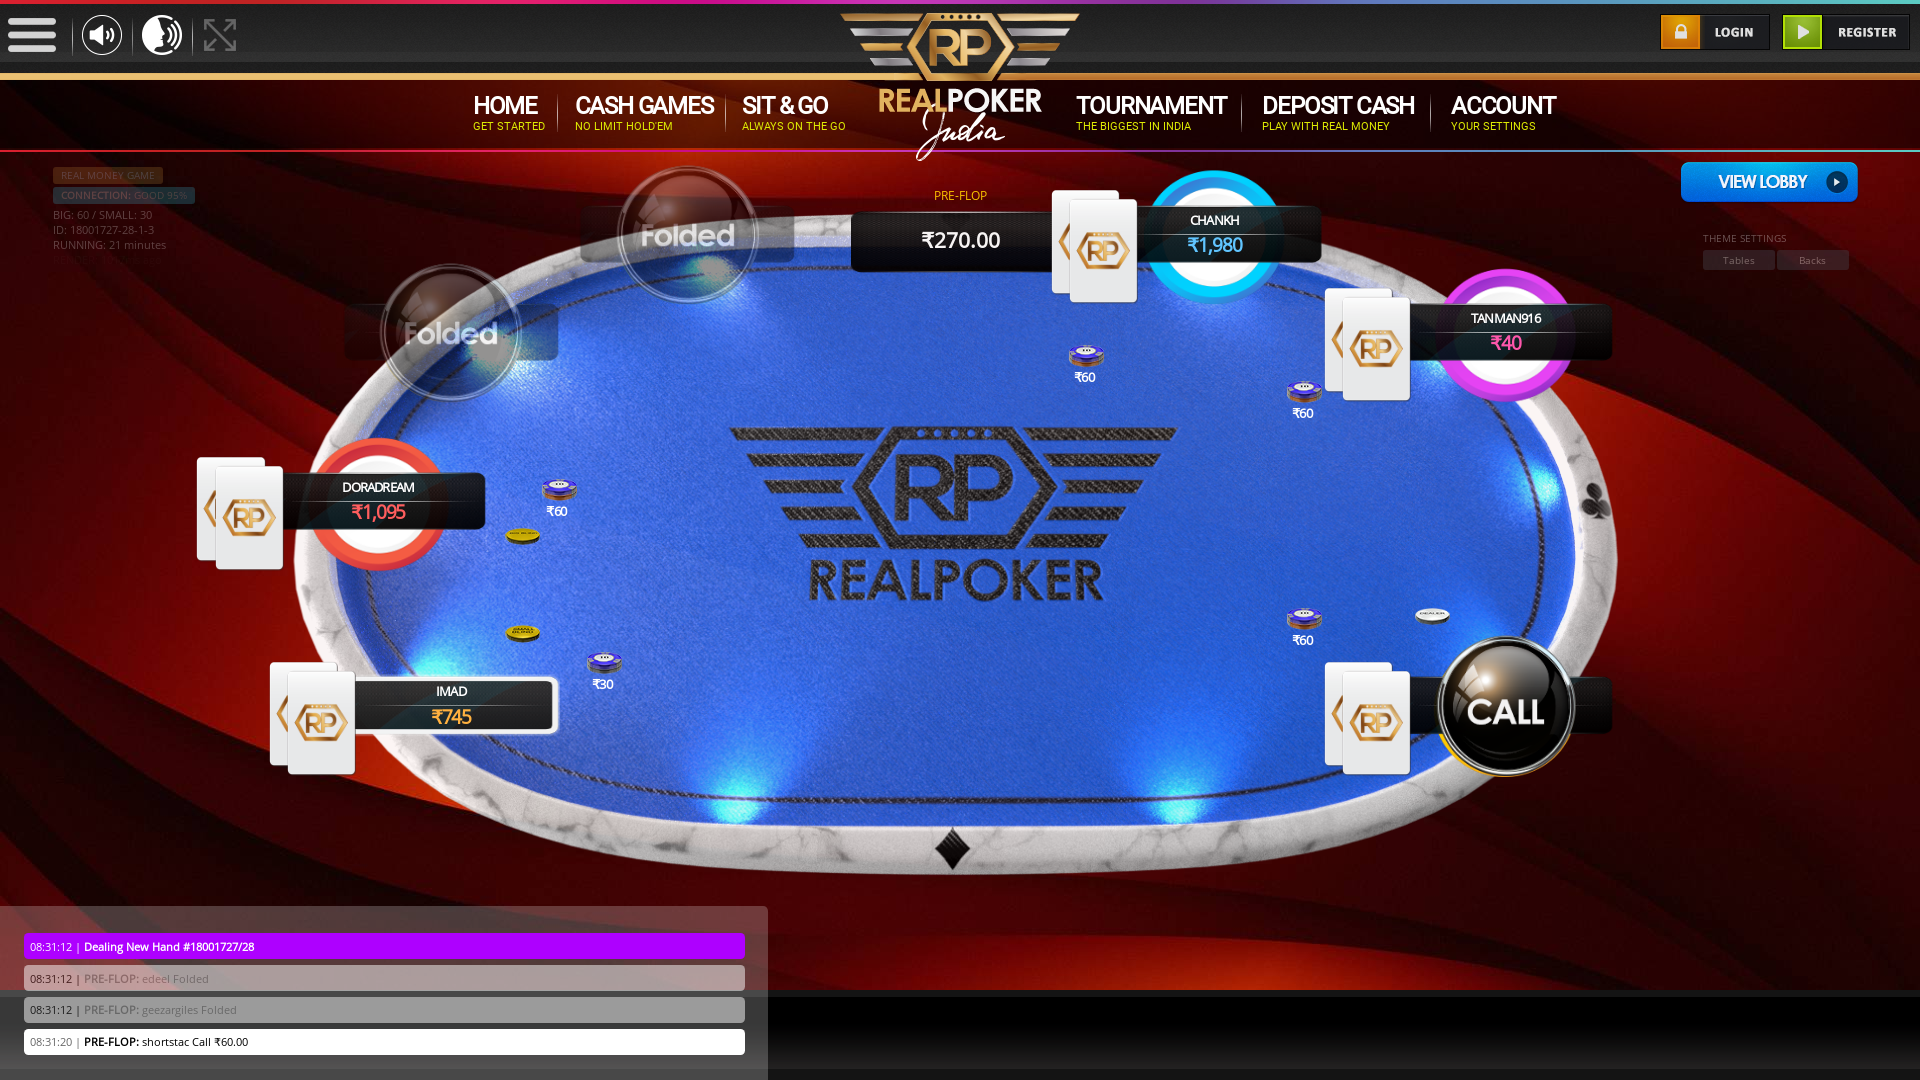 Greater Kailash, New Delhi 10 player poker in the 21st minute